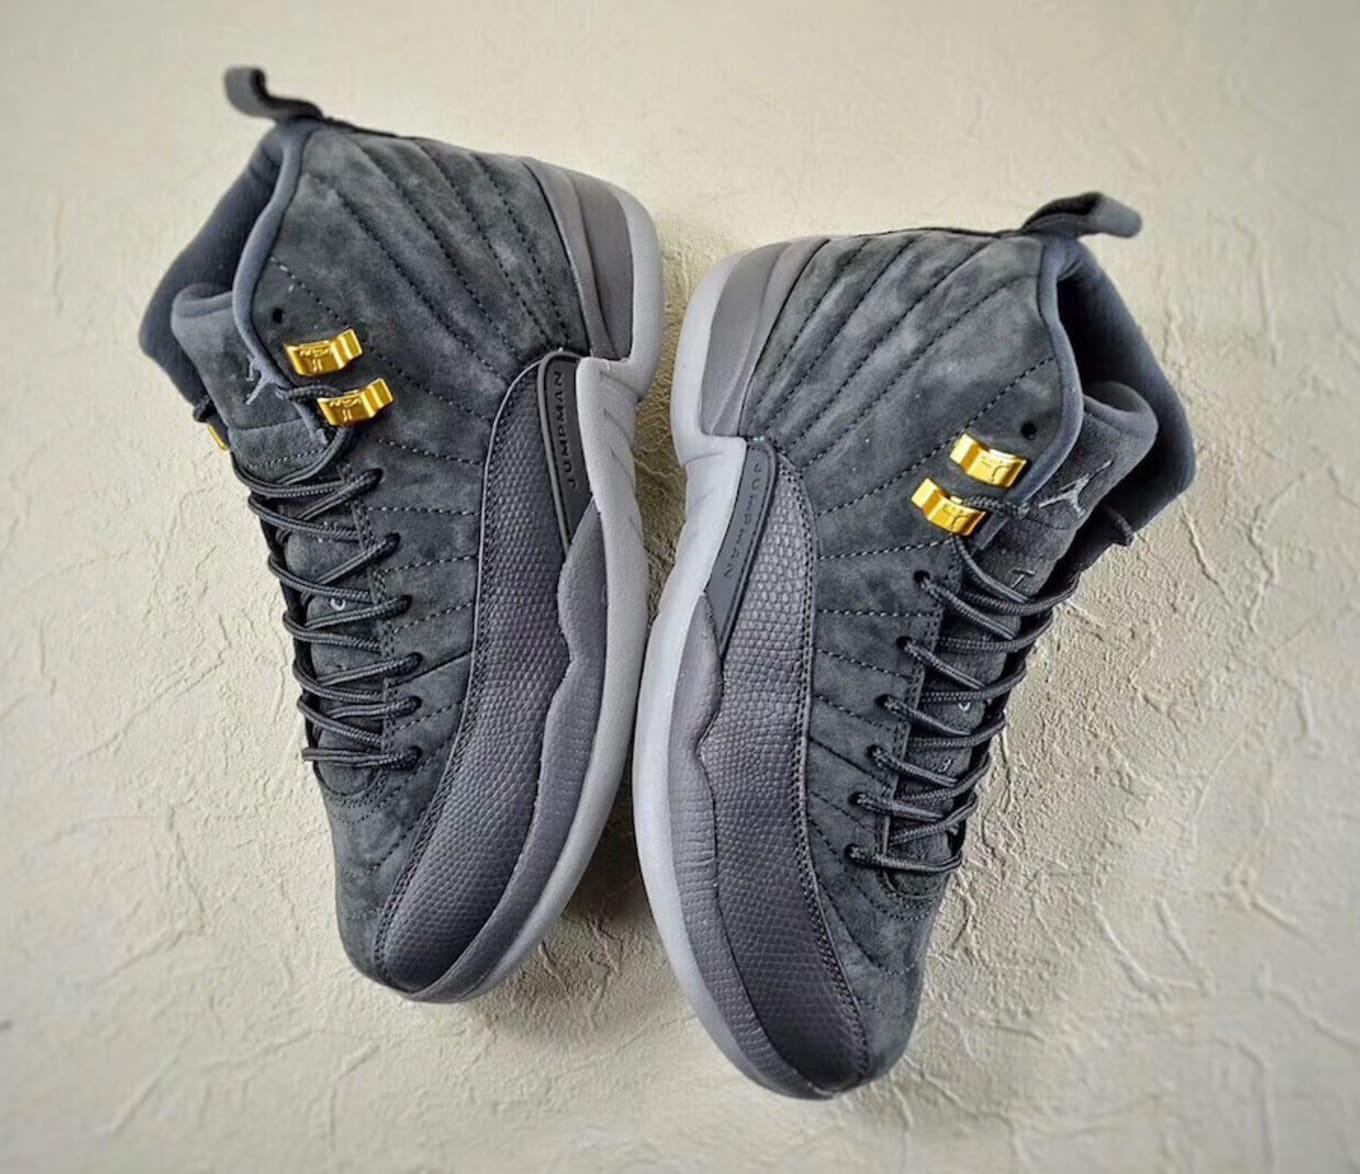 4723b77534a7  Dark Grey  Air Jordan 12 Retro Set for October Release